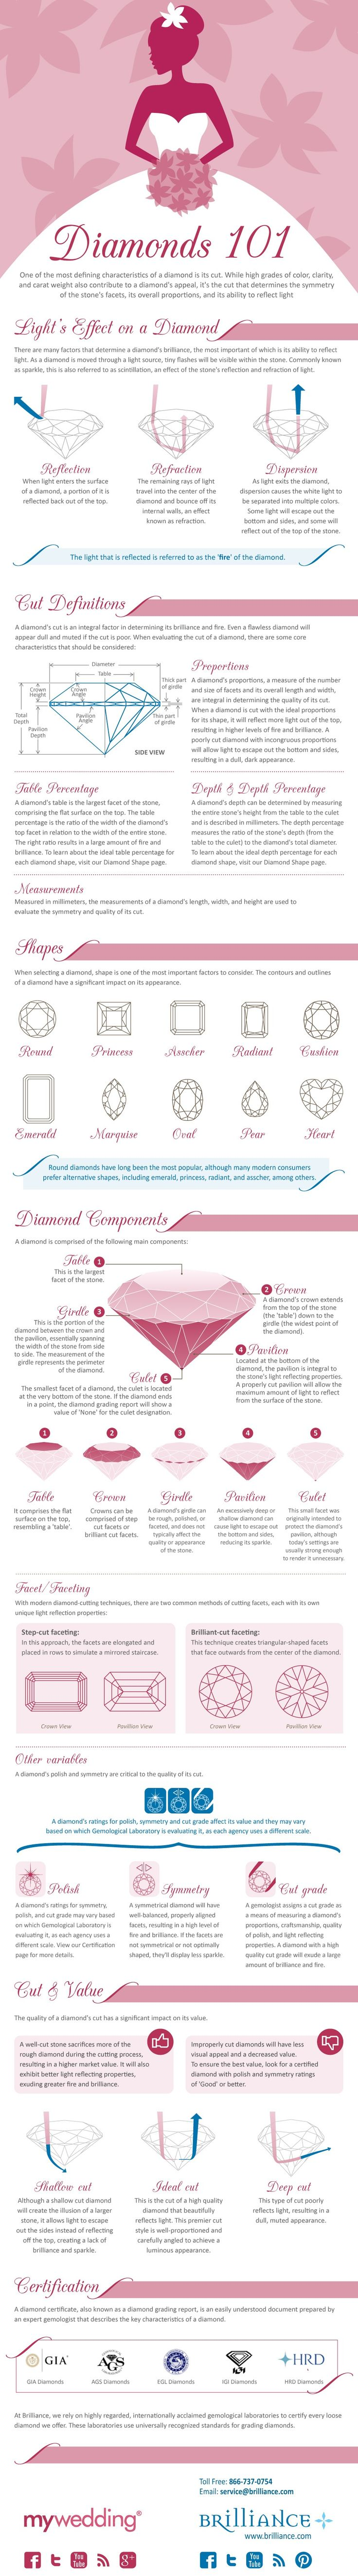 Diamond Education 101  Discover all you need to know about diamonds with our newest infographic. Brilliance.com, in partnership with Mywedding.com brings you this great infograph on diamond education.